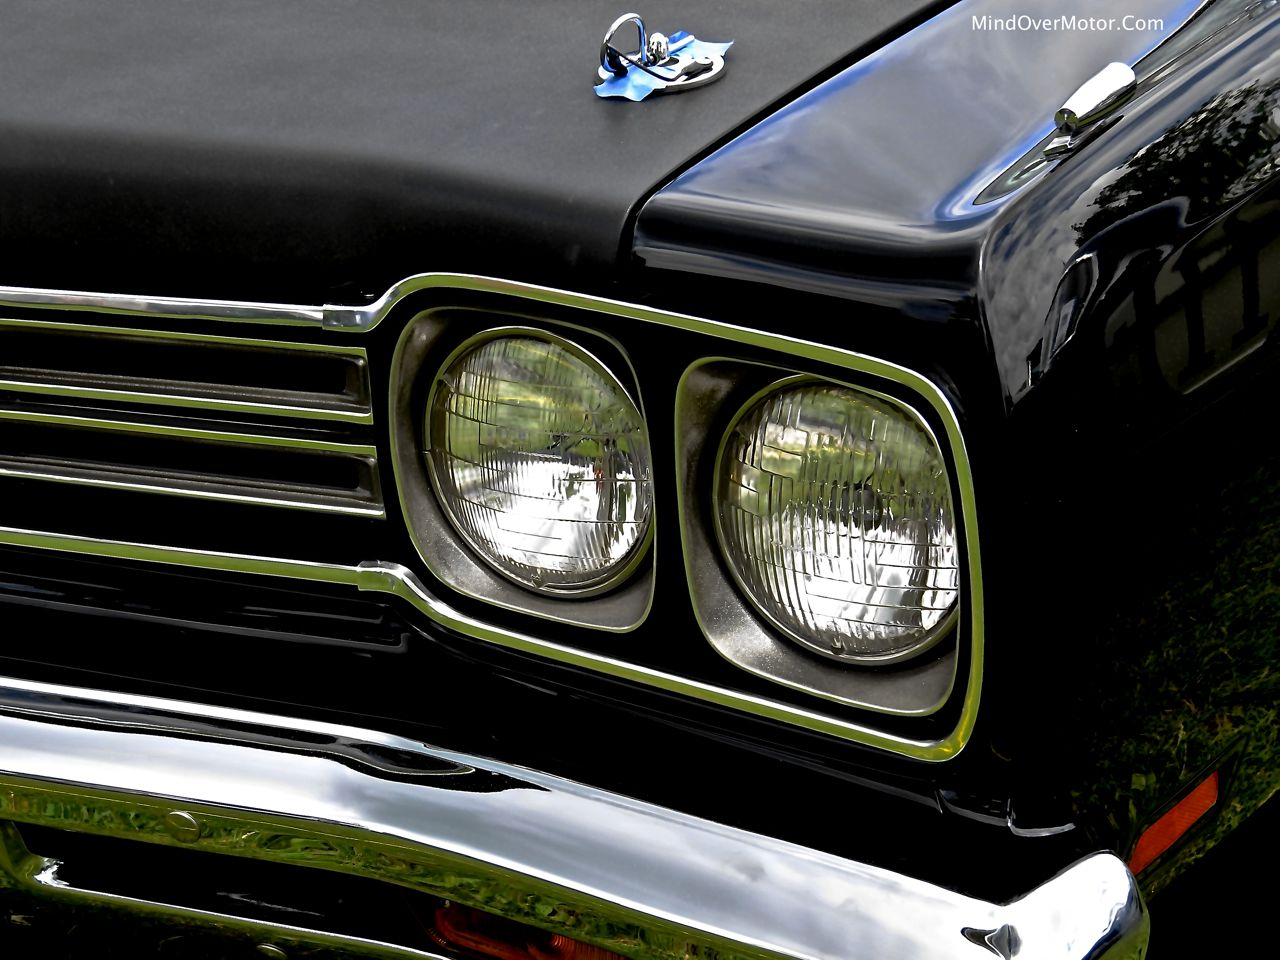 1969 Plymouth Road Runner 440+6 Headlights